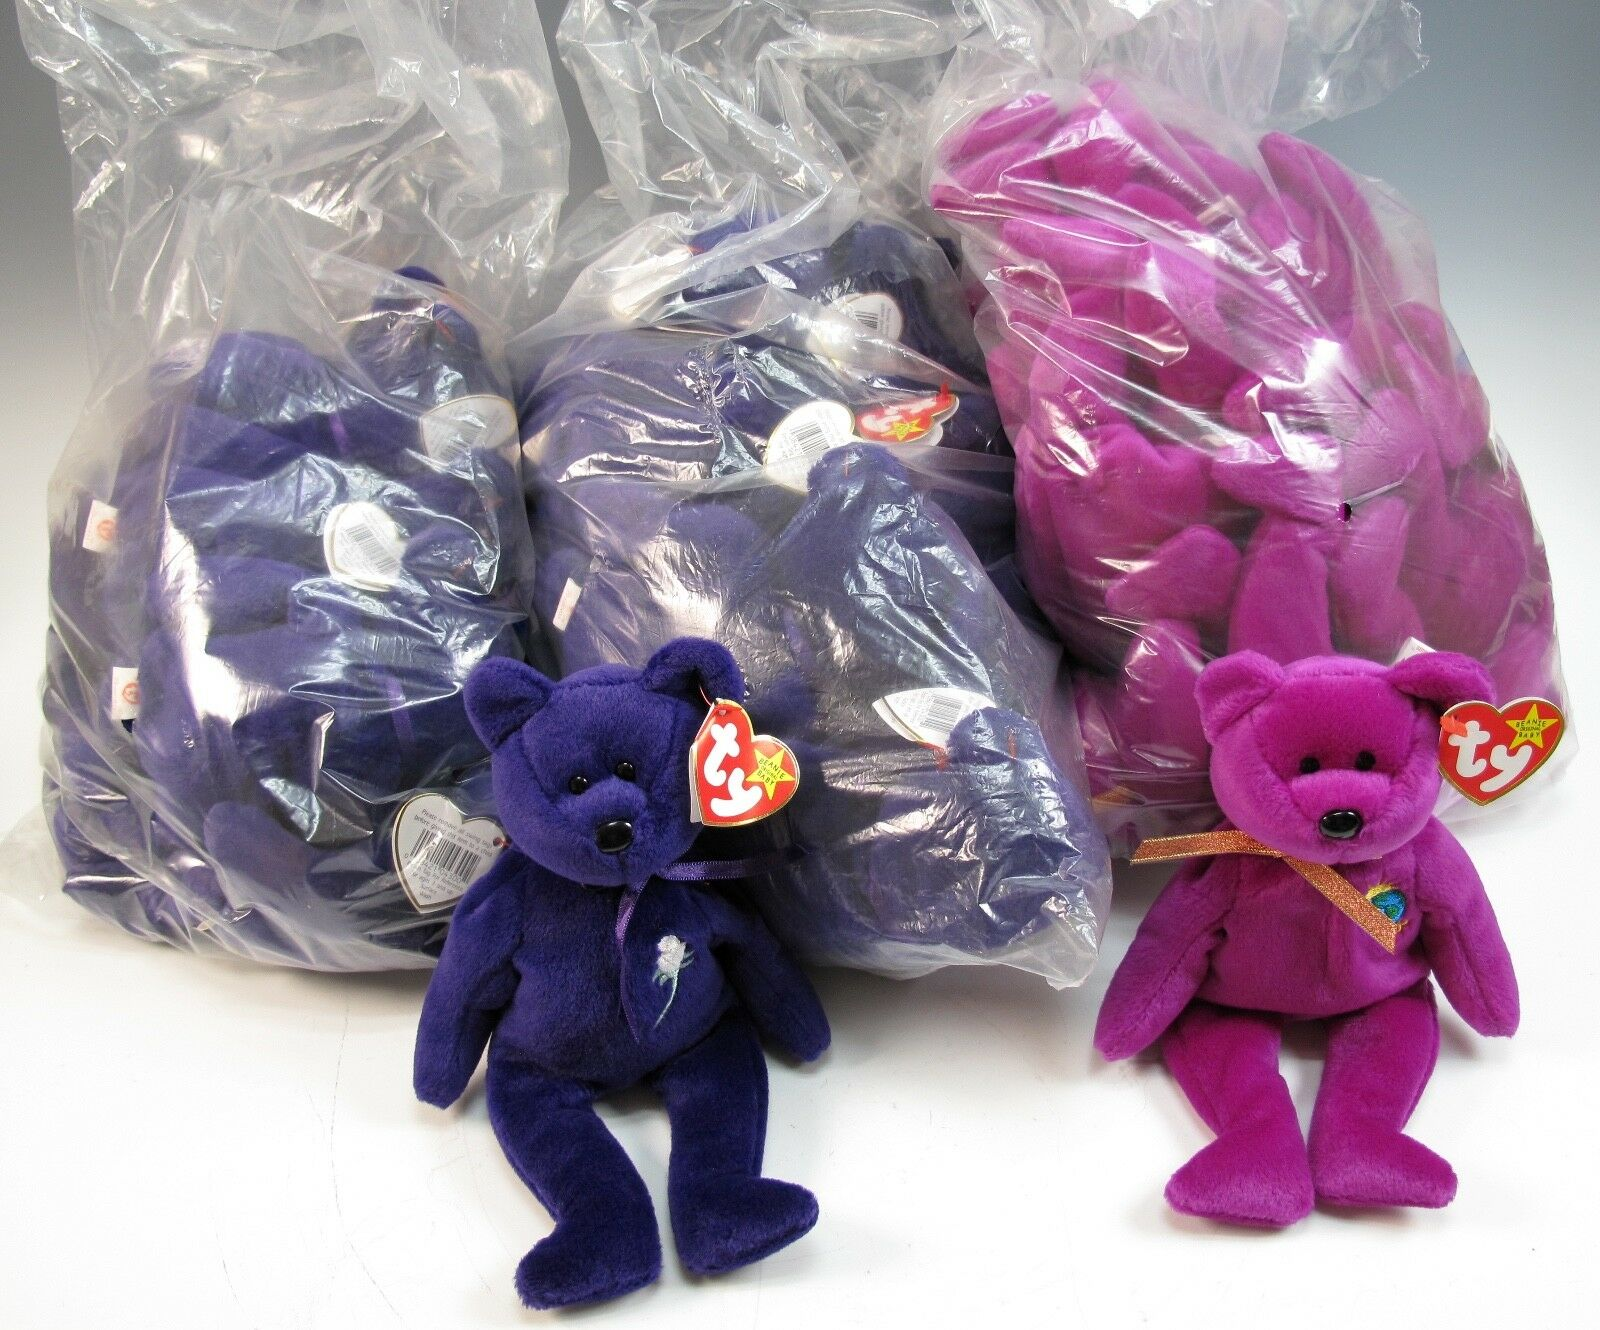 Old Beanie Baby Collection with Lots of Princess and Millennium